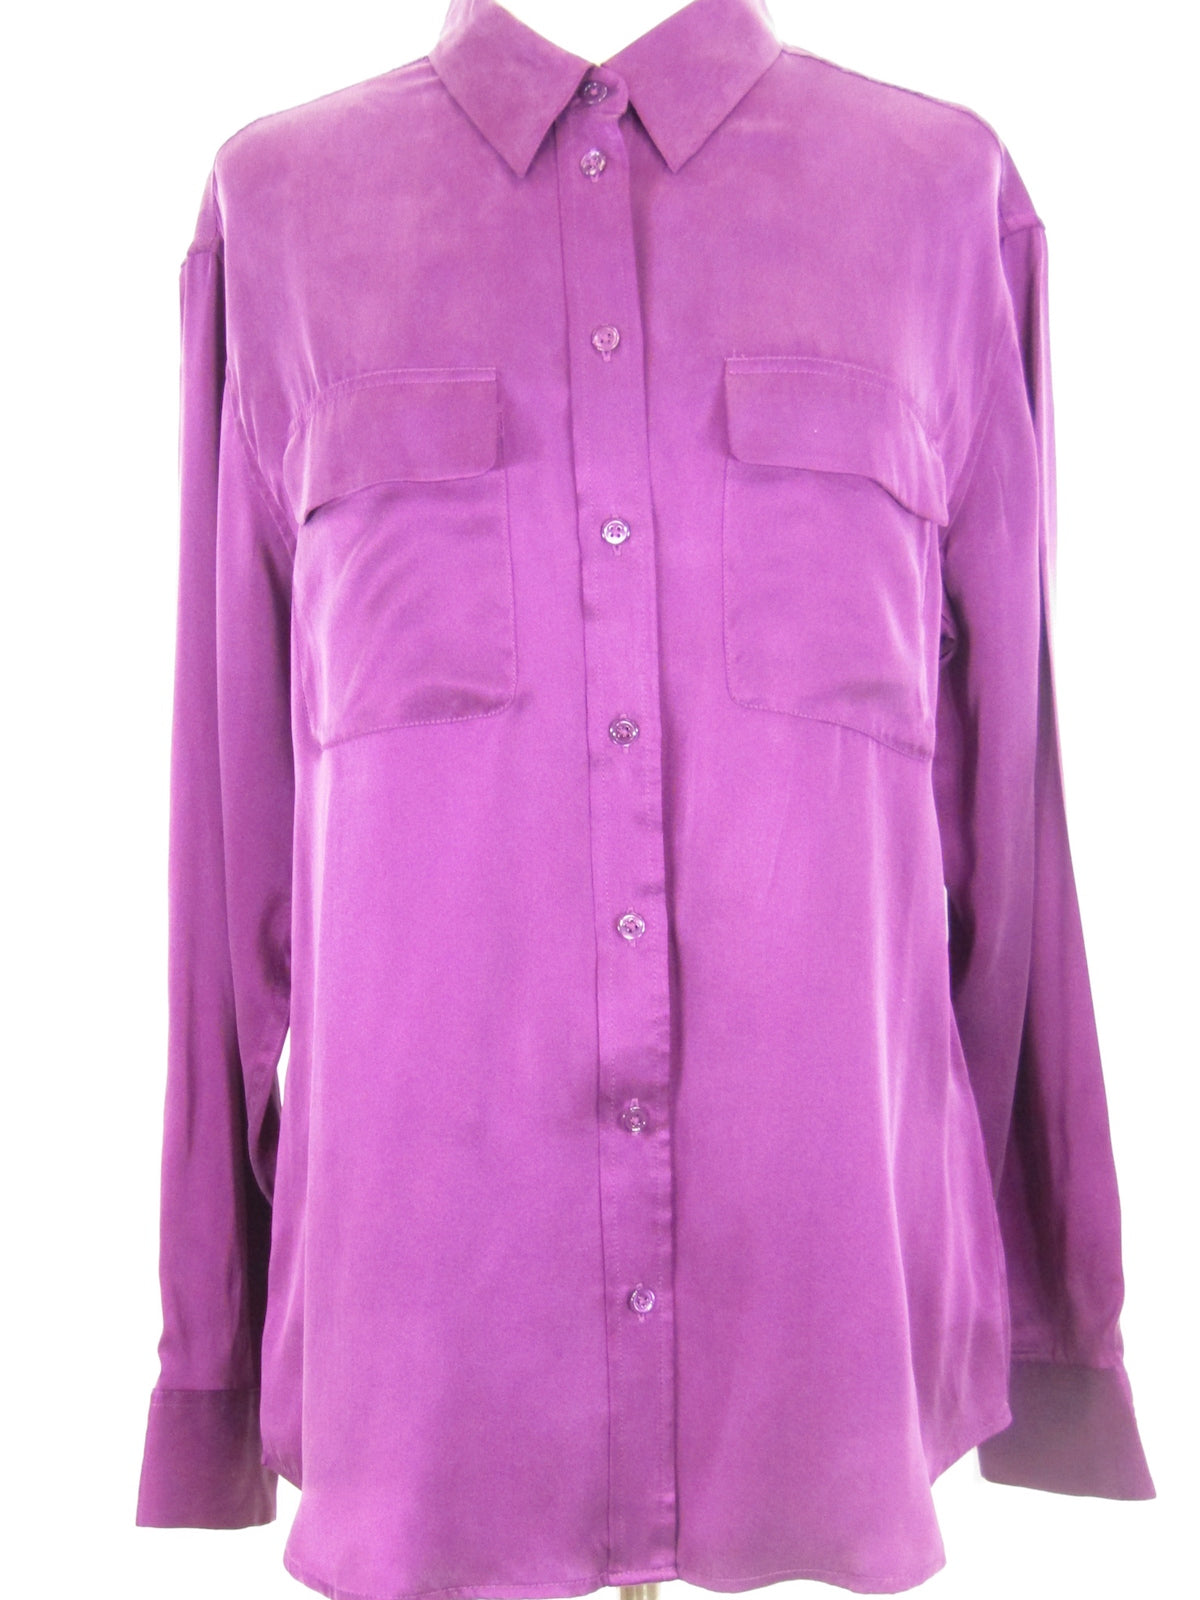 f392087535efd2 EQUIPMENT FEMME Women Silk Magenta Button Down Blouse Top Shirt Size M